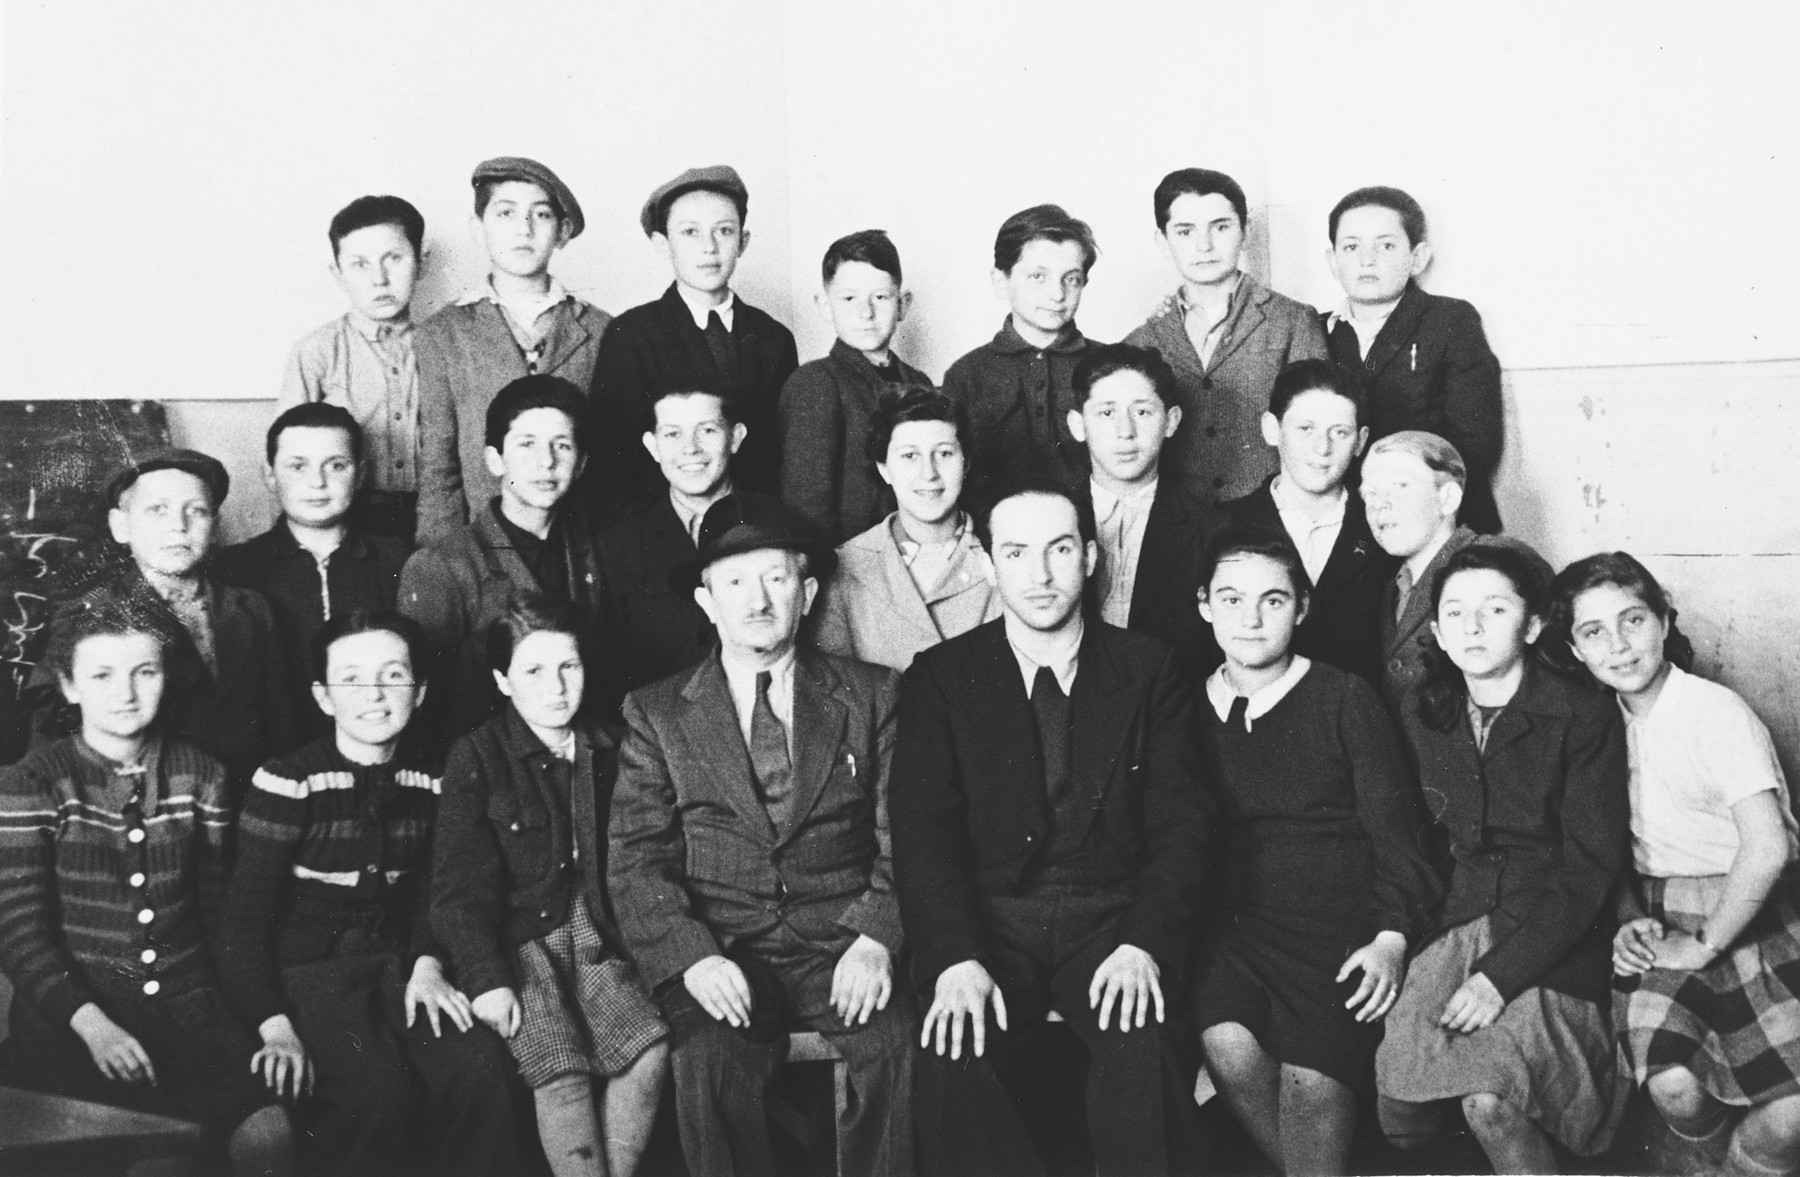 Group portrait of Jewish students and teachers in the Hasenecke DP camp school.  Pictured in the front row on the far right in the white shirt is Mania Wurm.